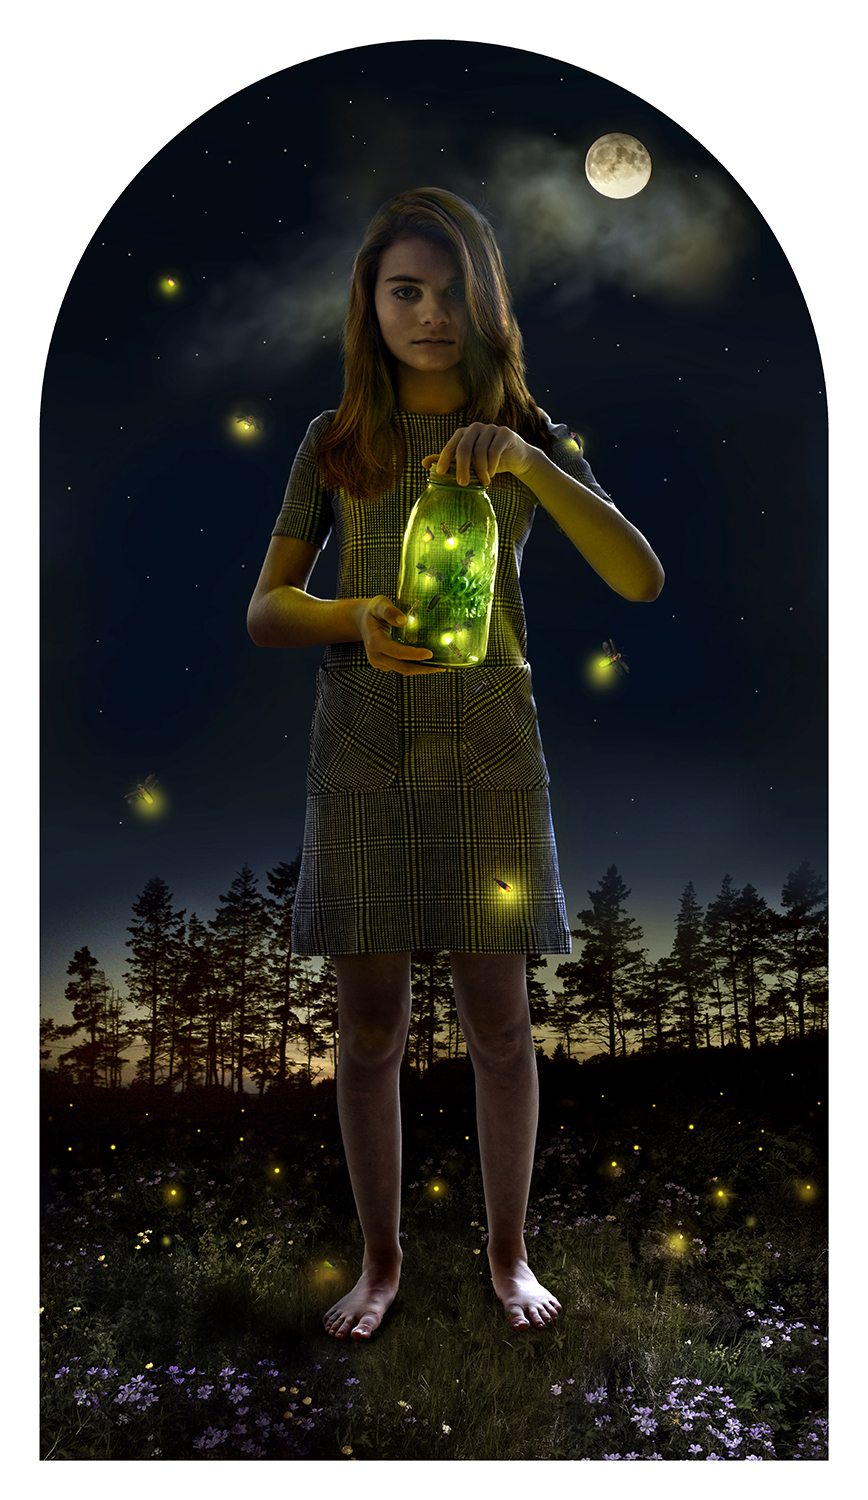 Lighning in a Jar © Tom Chambers